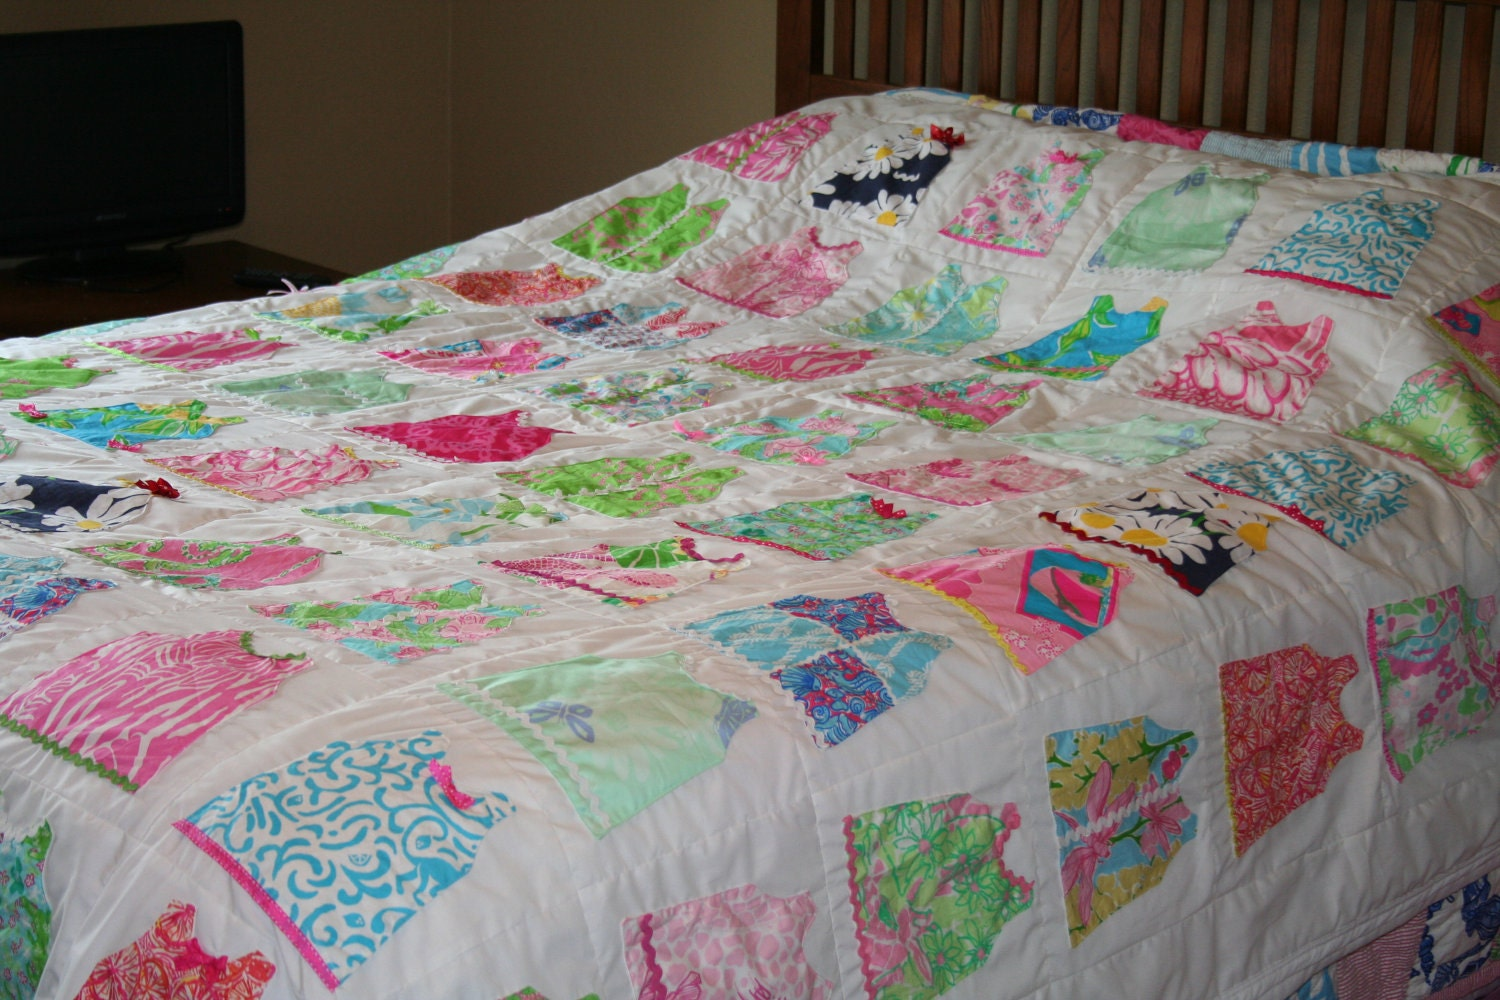 Queen size shift dress quilt made with Lilly pulitzer fabric : lilly pulitzer quilts - Adamdwight.com